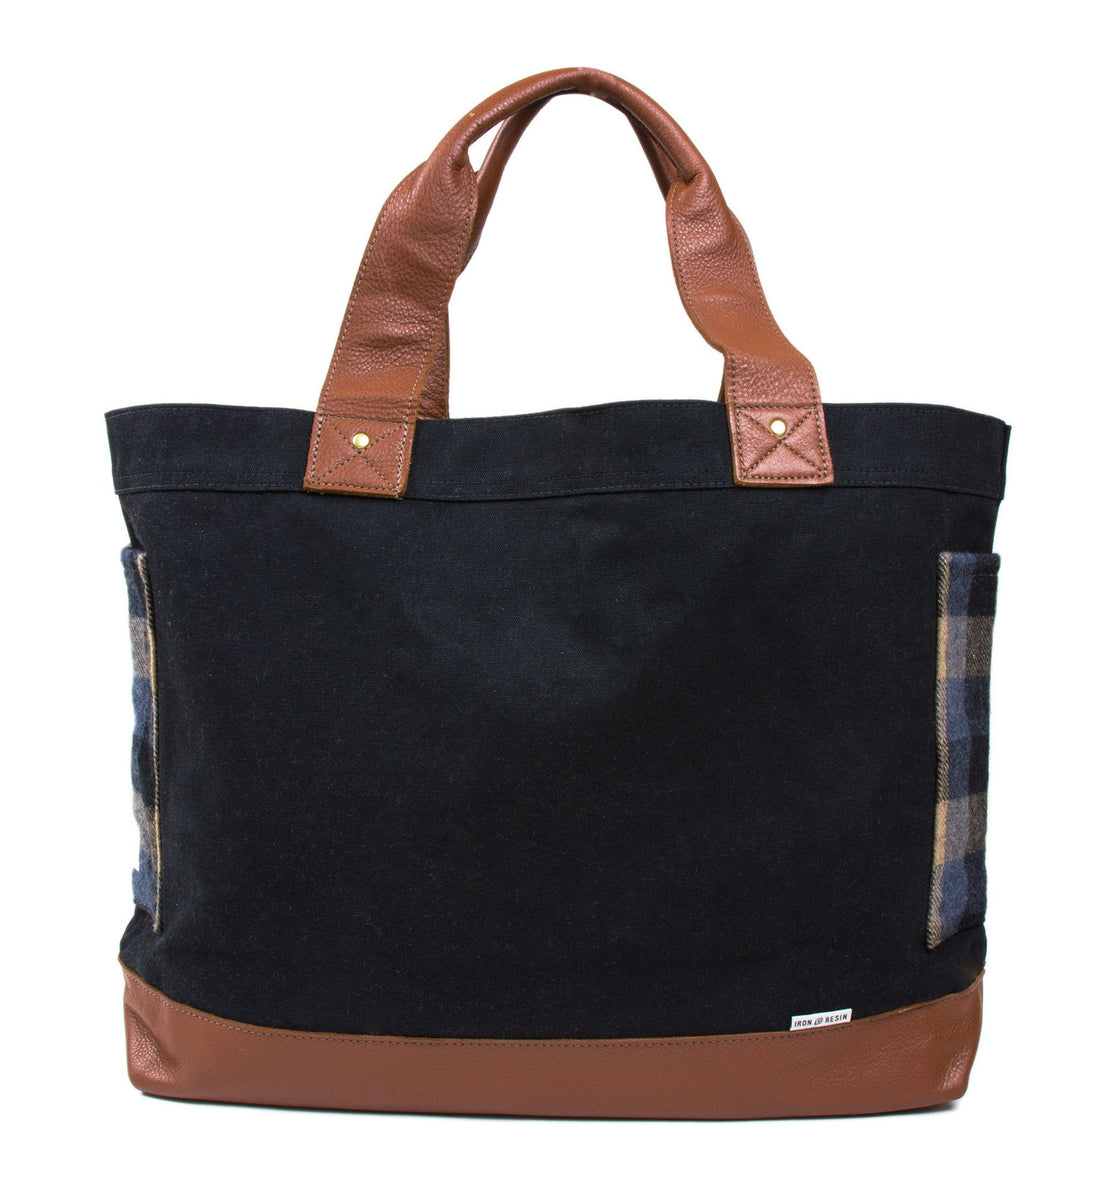 IRON & RESIN TOTE BAG - Accessories: Bags - Iron and Resin